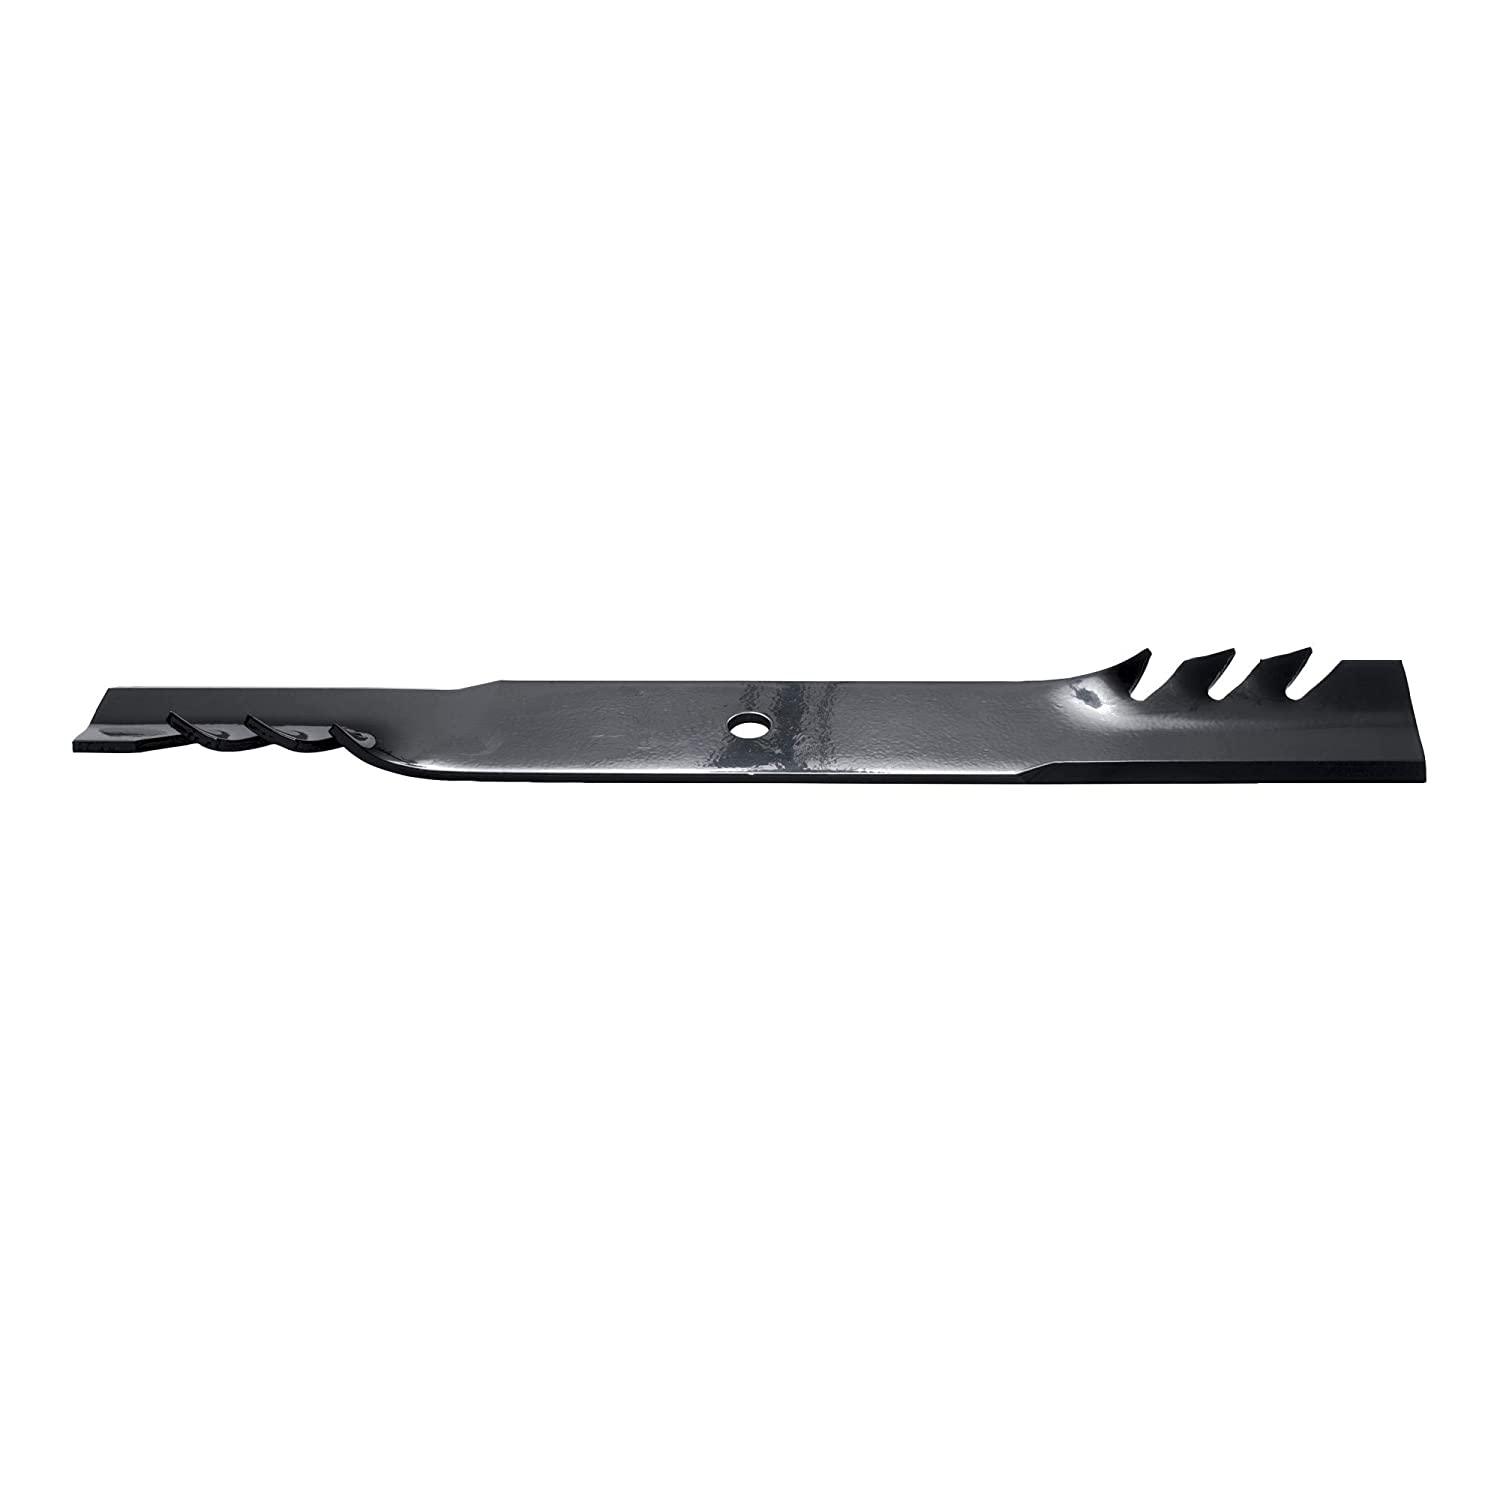 Oregon 96-319 Gator G3 Lawn Mower Blade, 20-1/2-Inch, Replaces Toro, Exmark, Dixon, Hustler and More